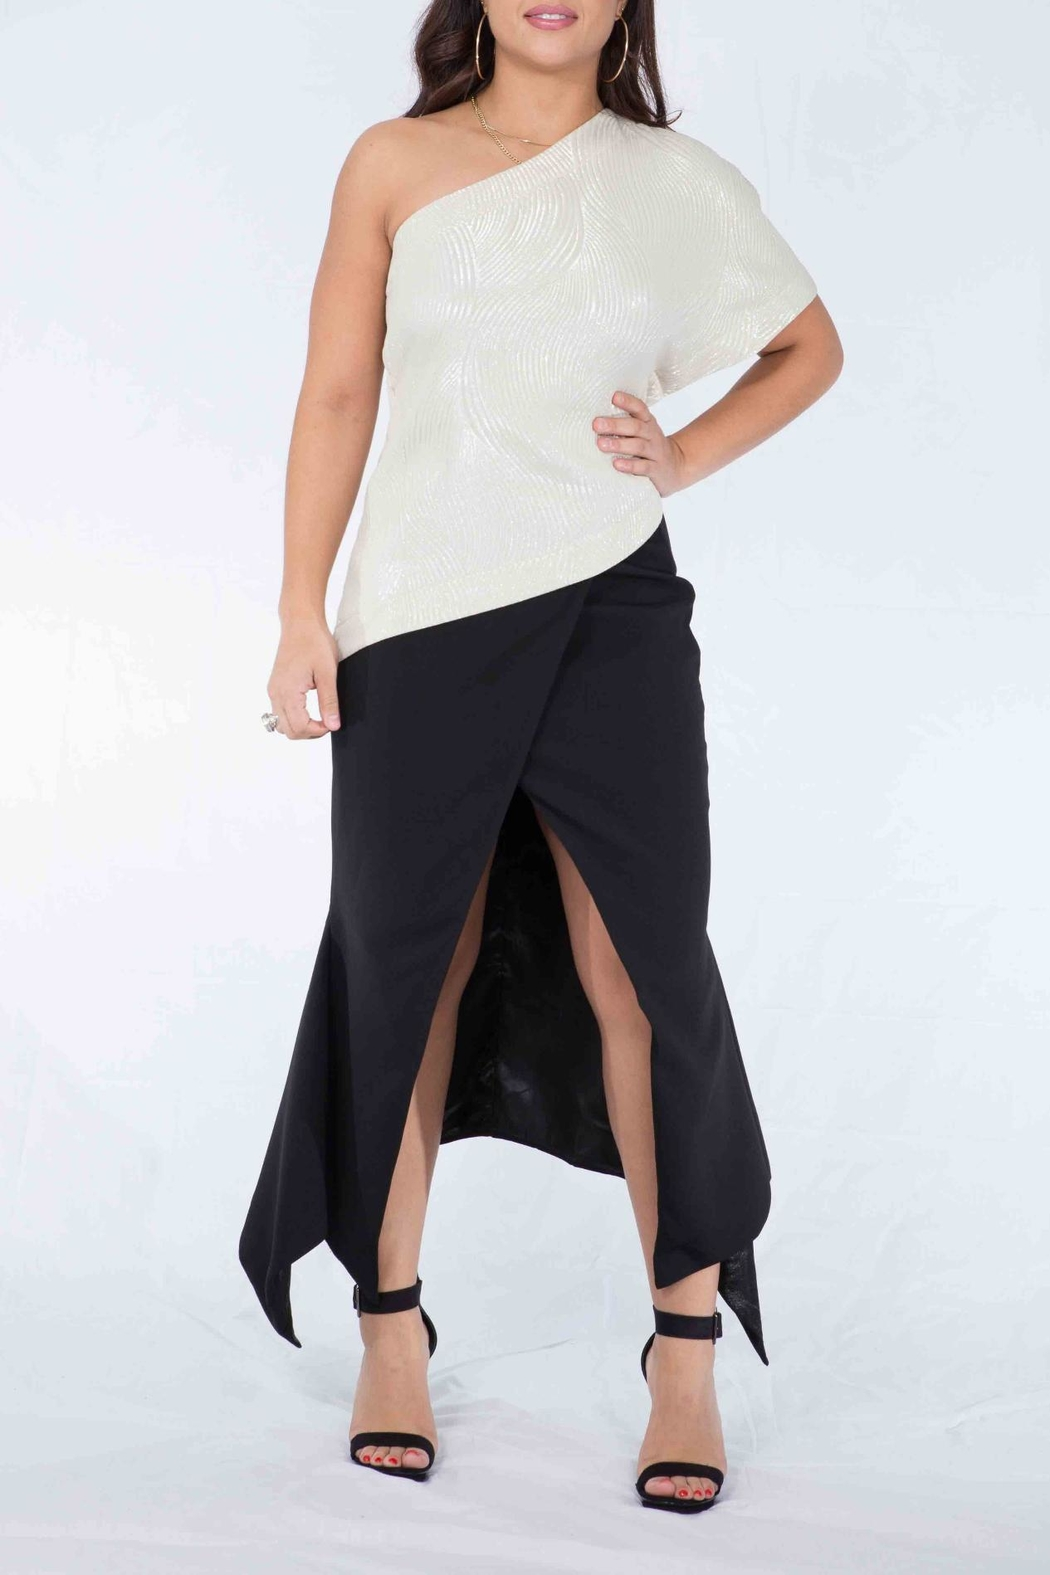 MODChic Couture Taylor Glam Top - Side Cropped Image